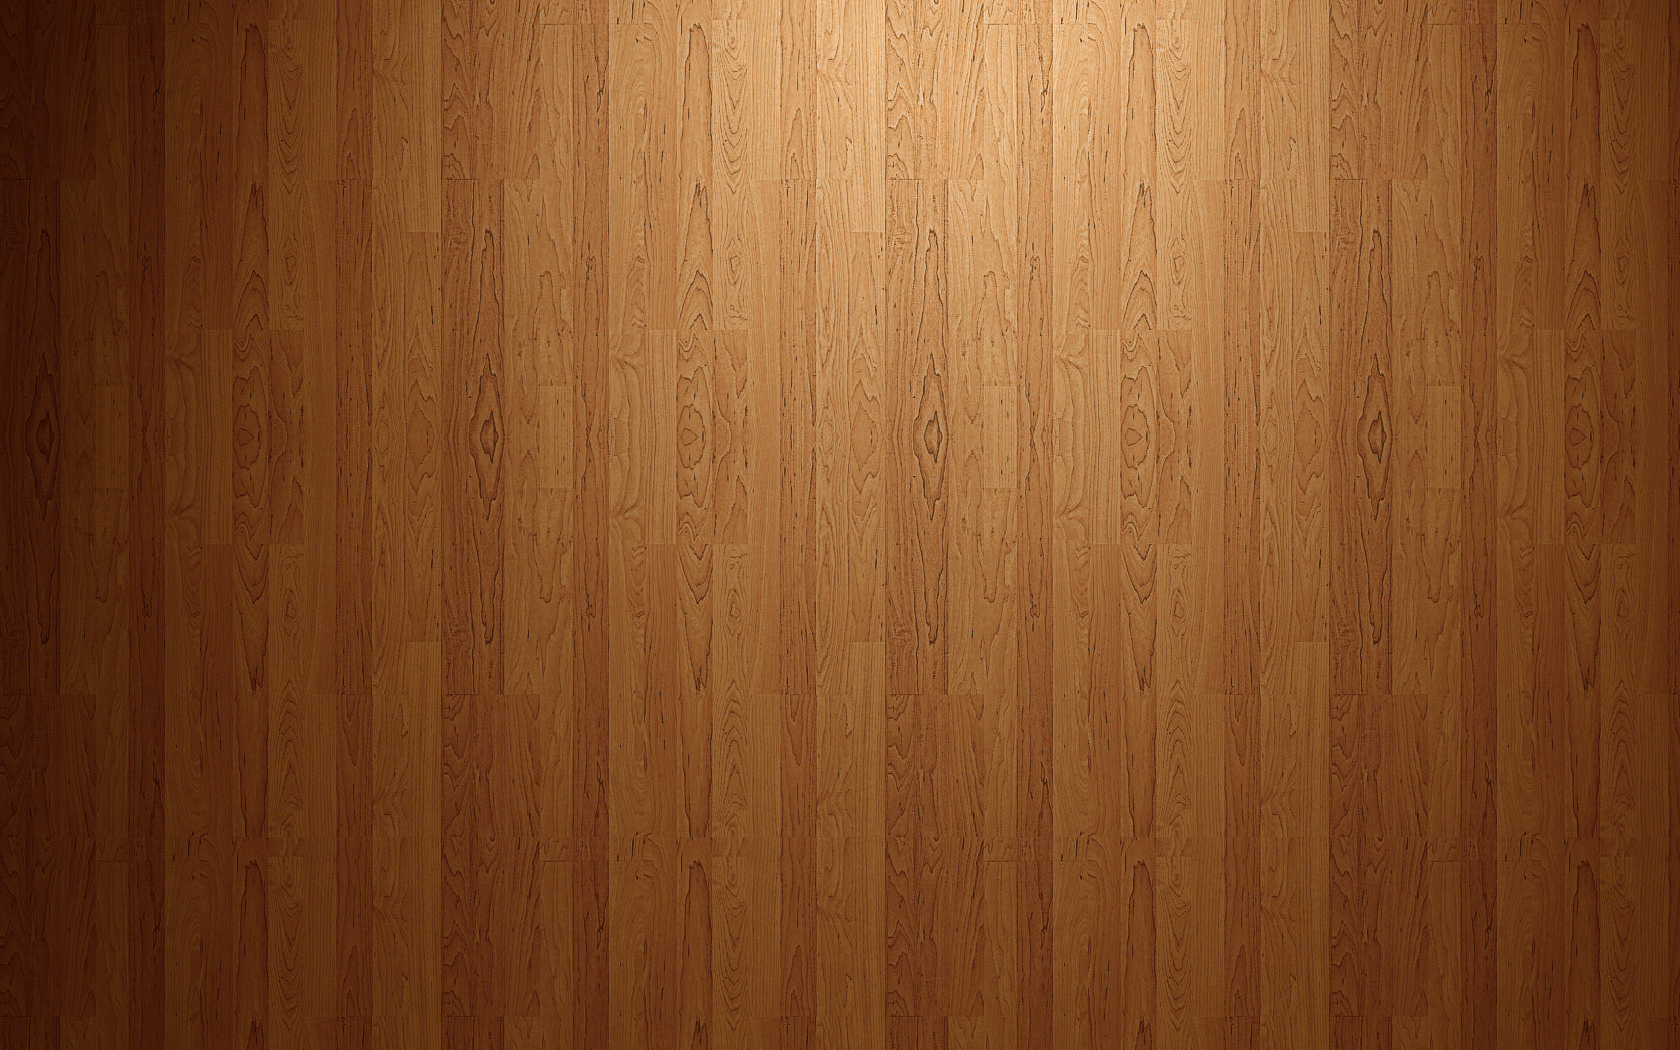 Floor Wood Board PPT Backgrounds